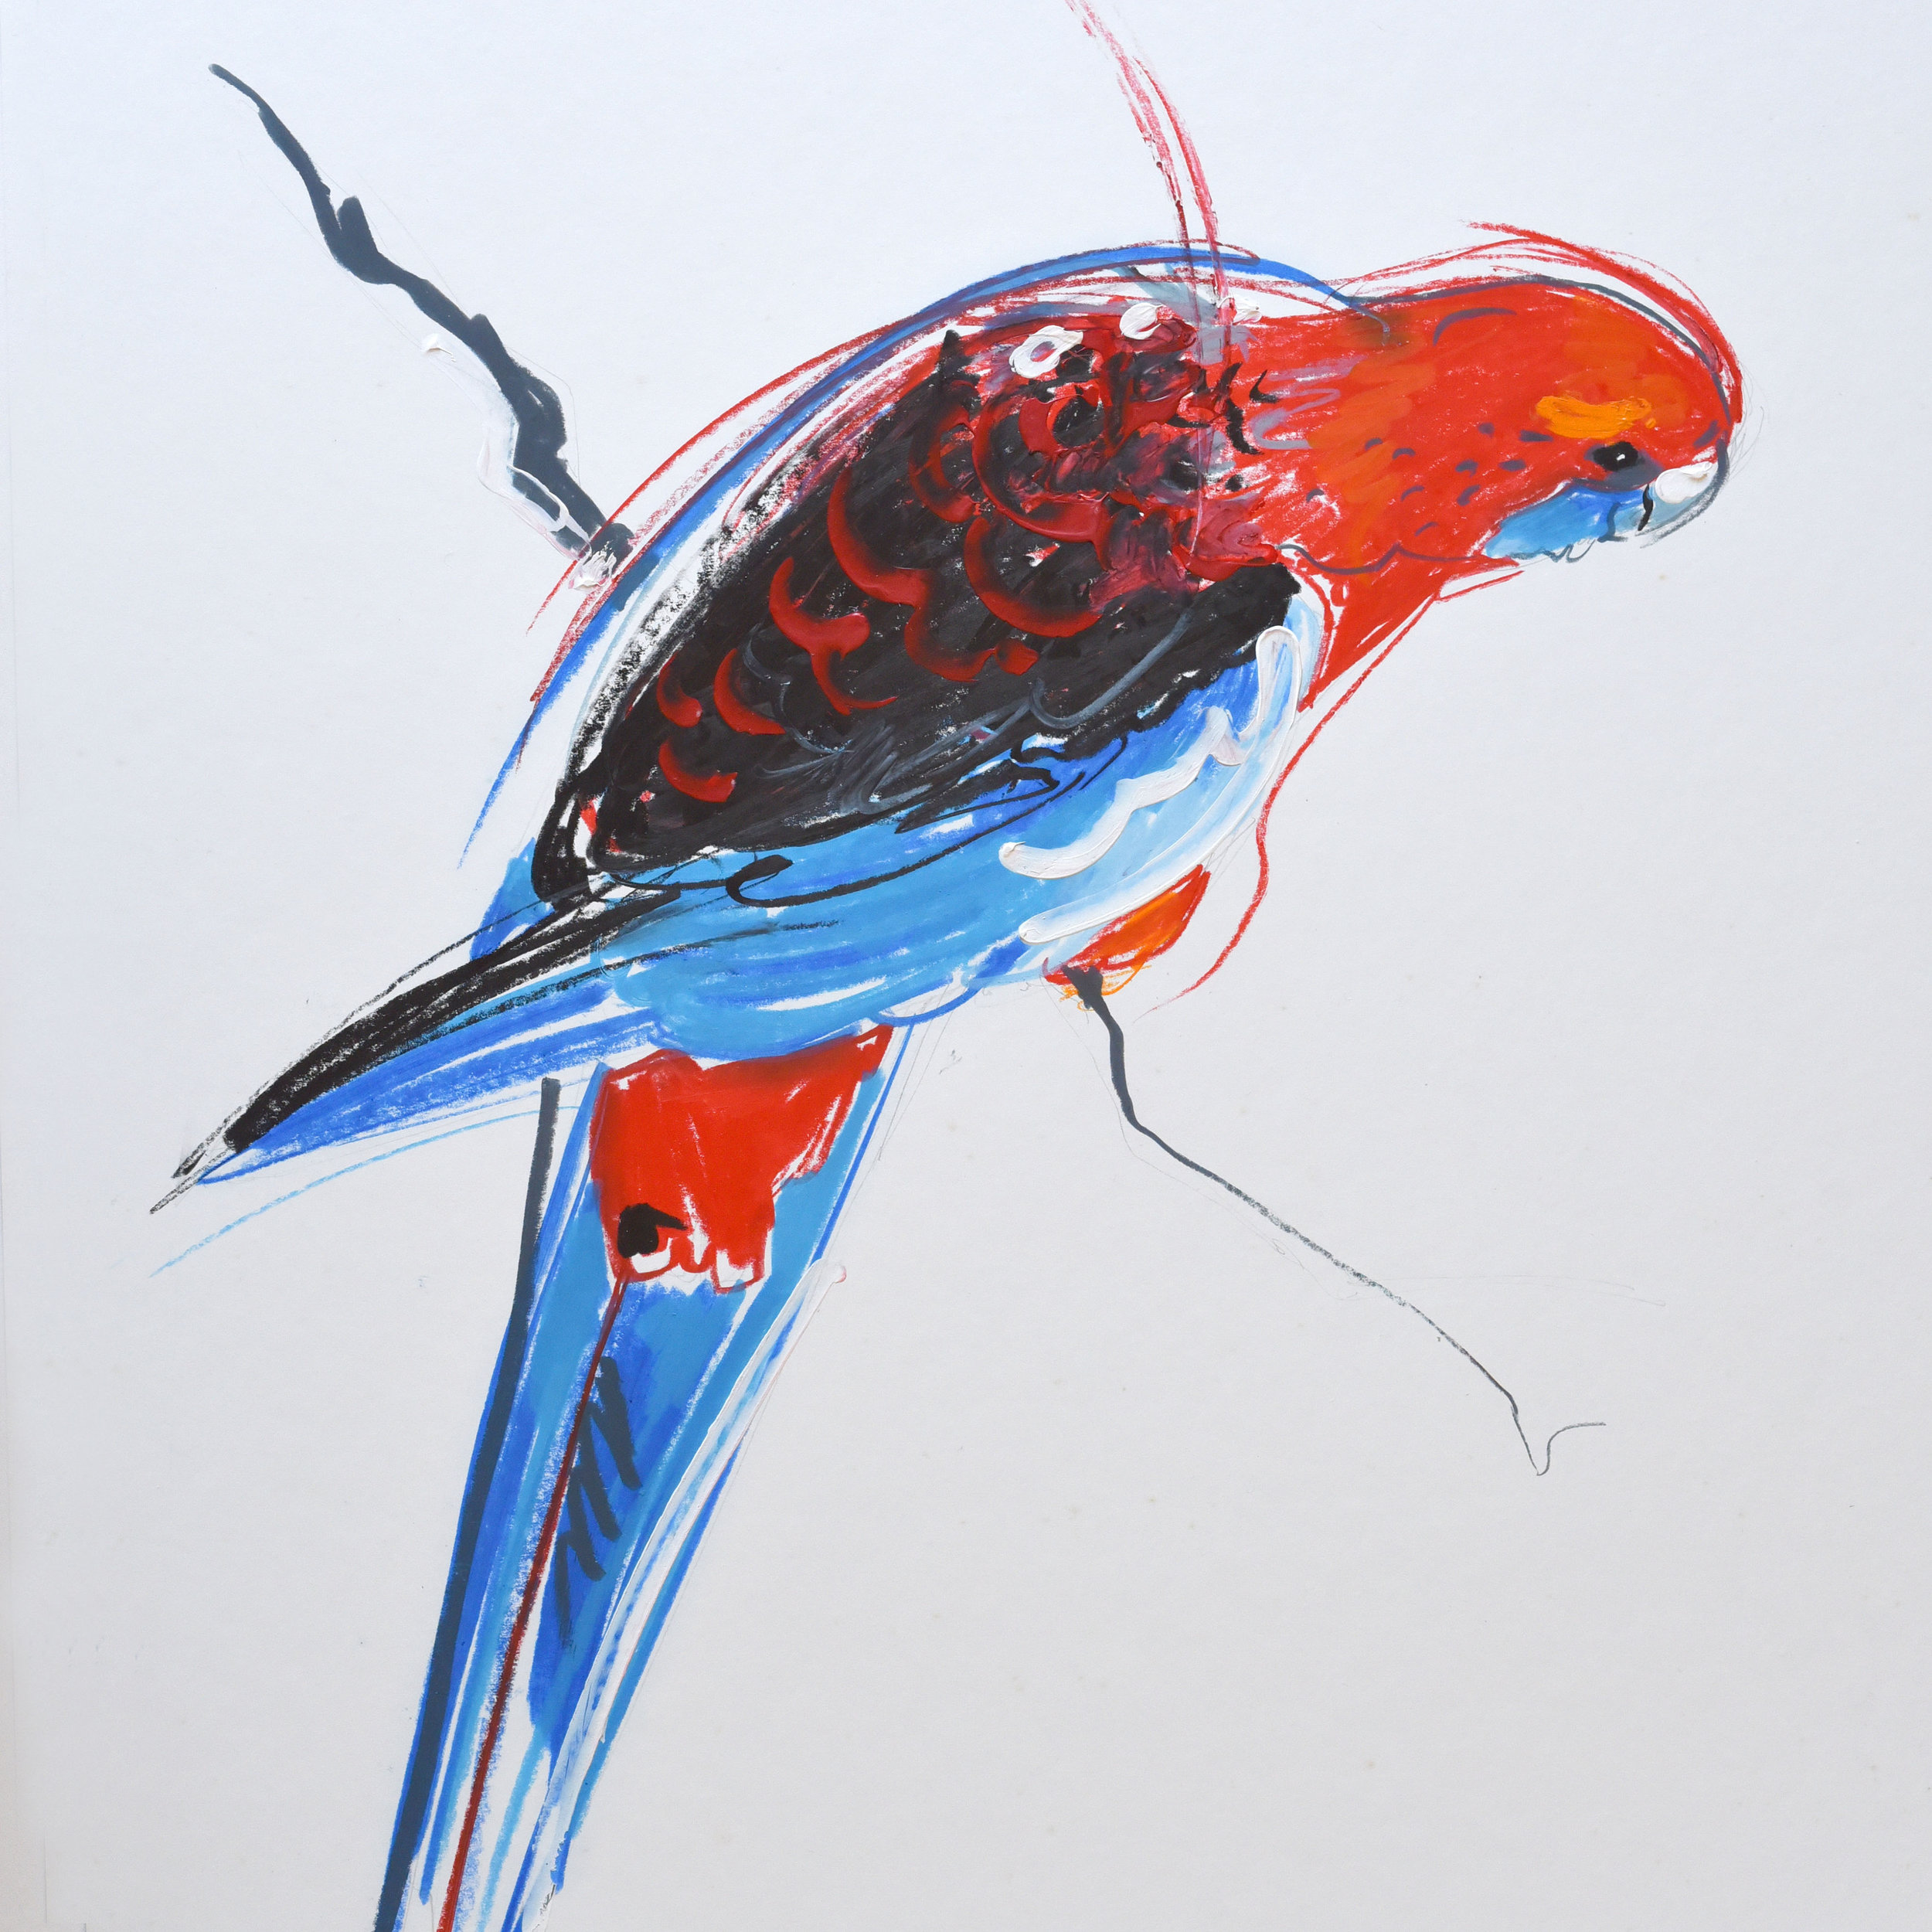 Painting of a red and blue Australian parrot using acrylic paint and stabilotone